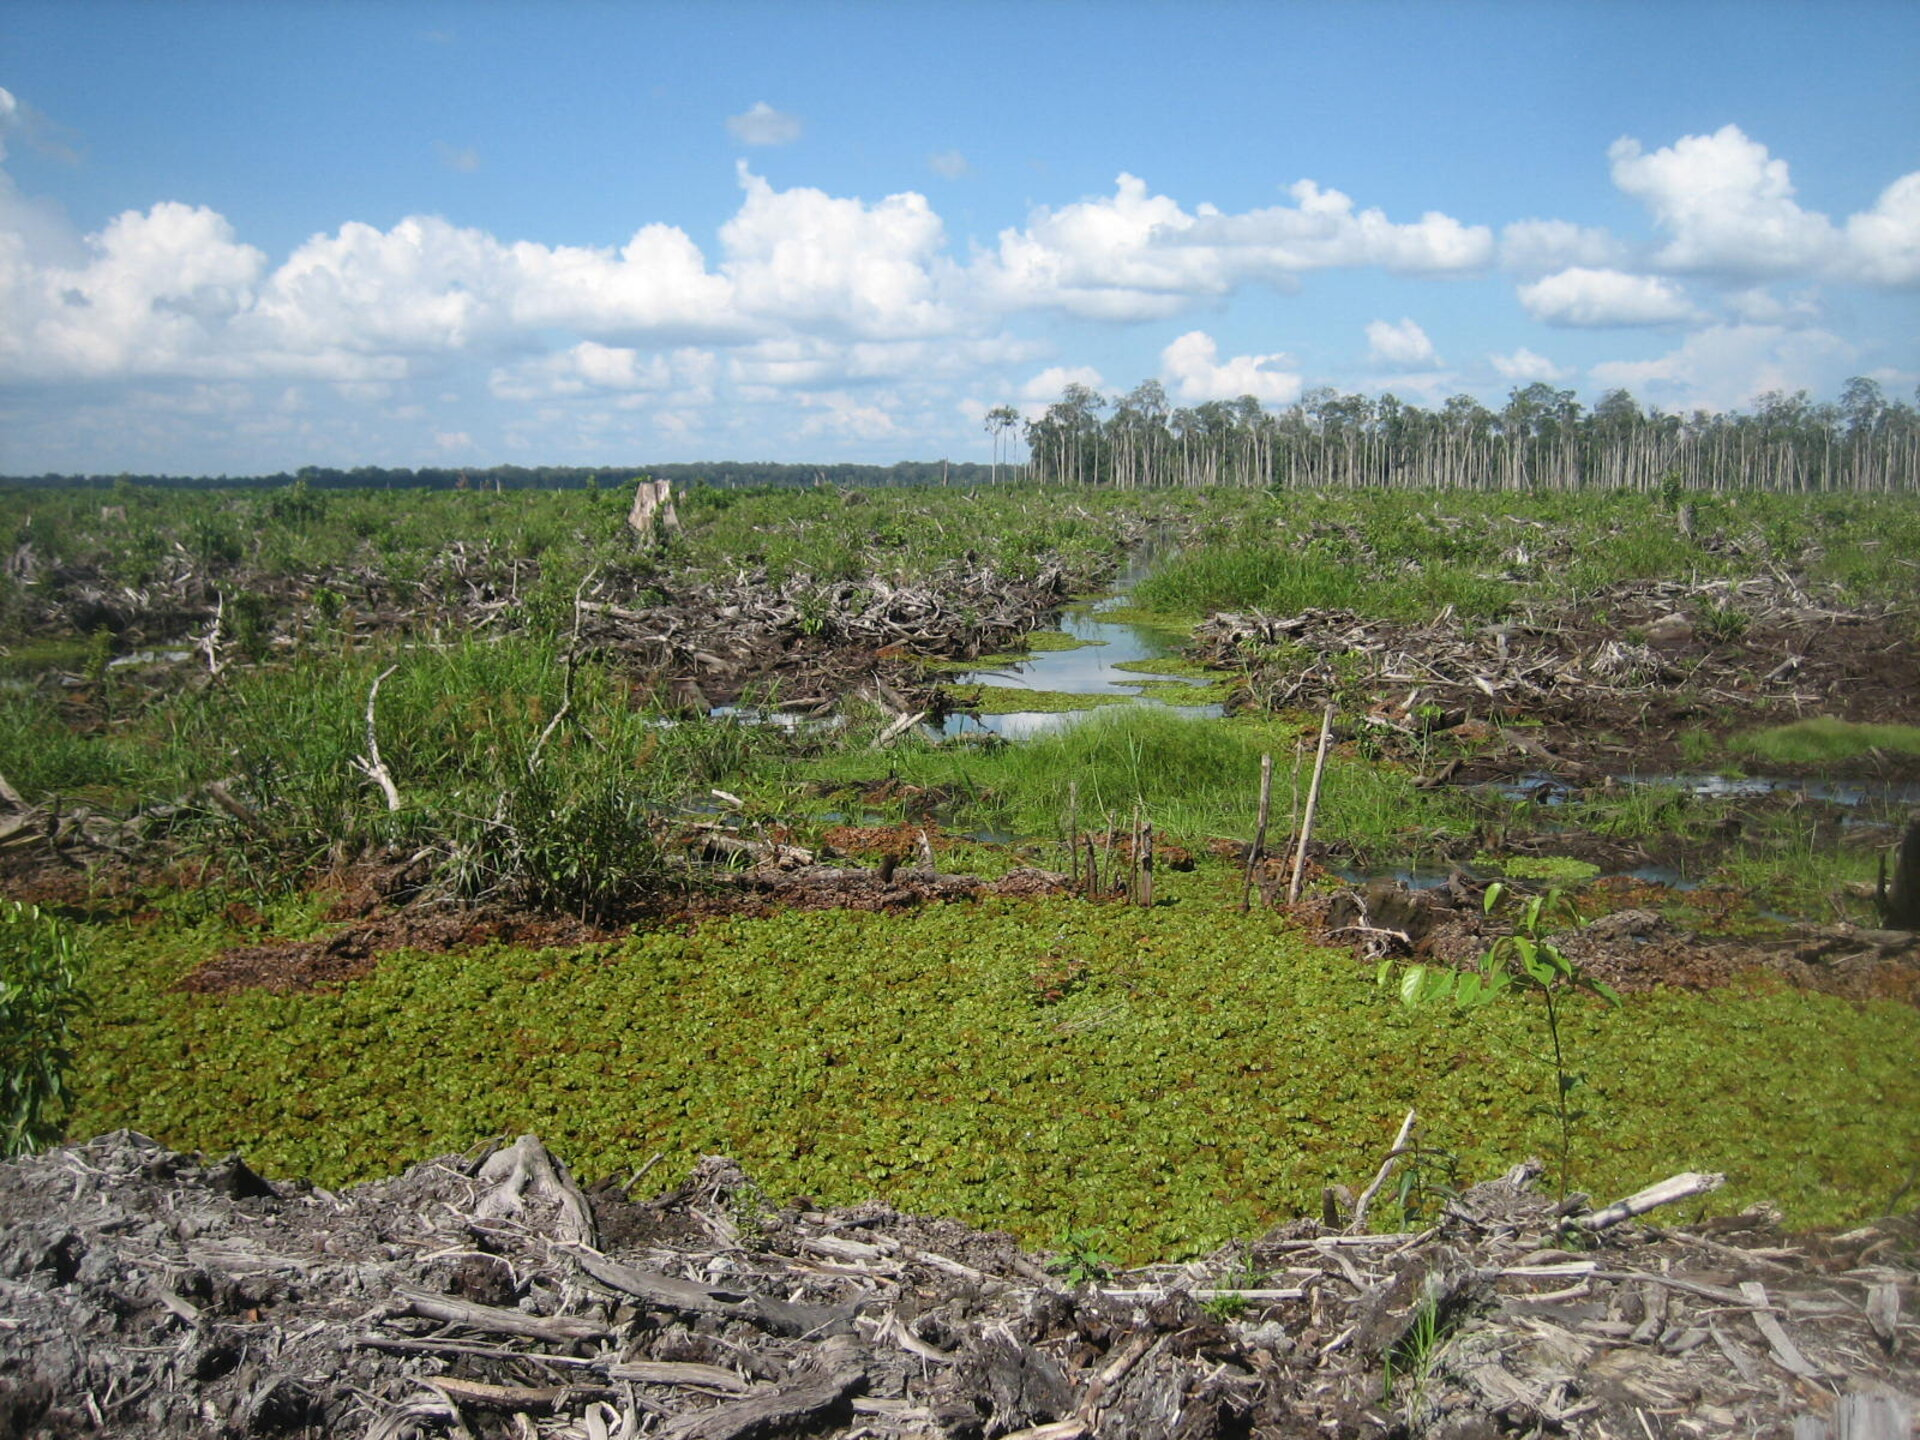 Deforestation damages peatlands